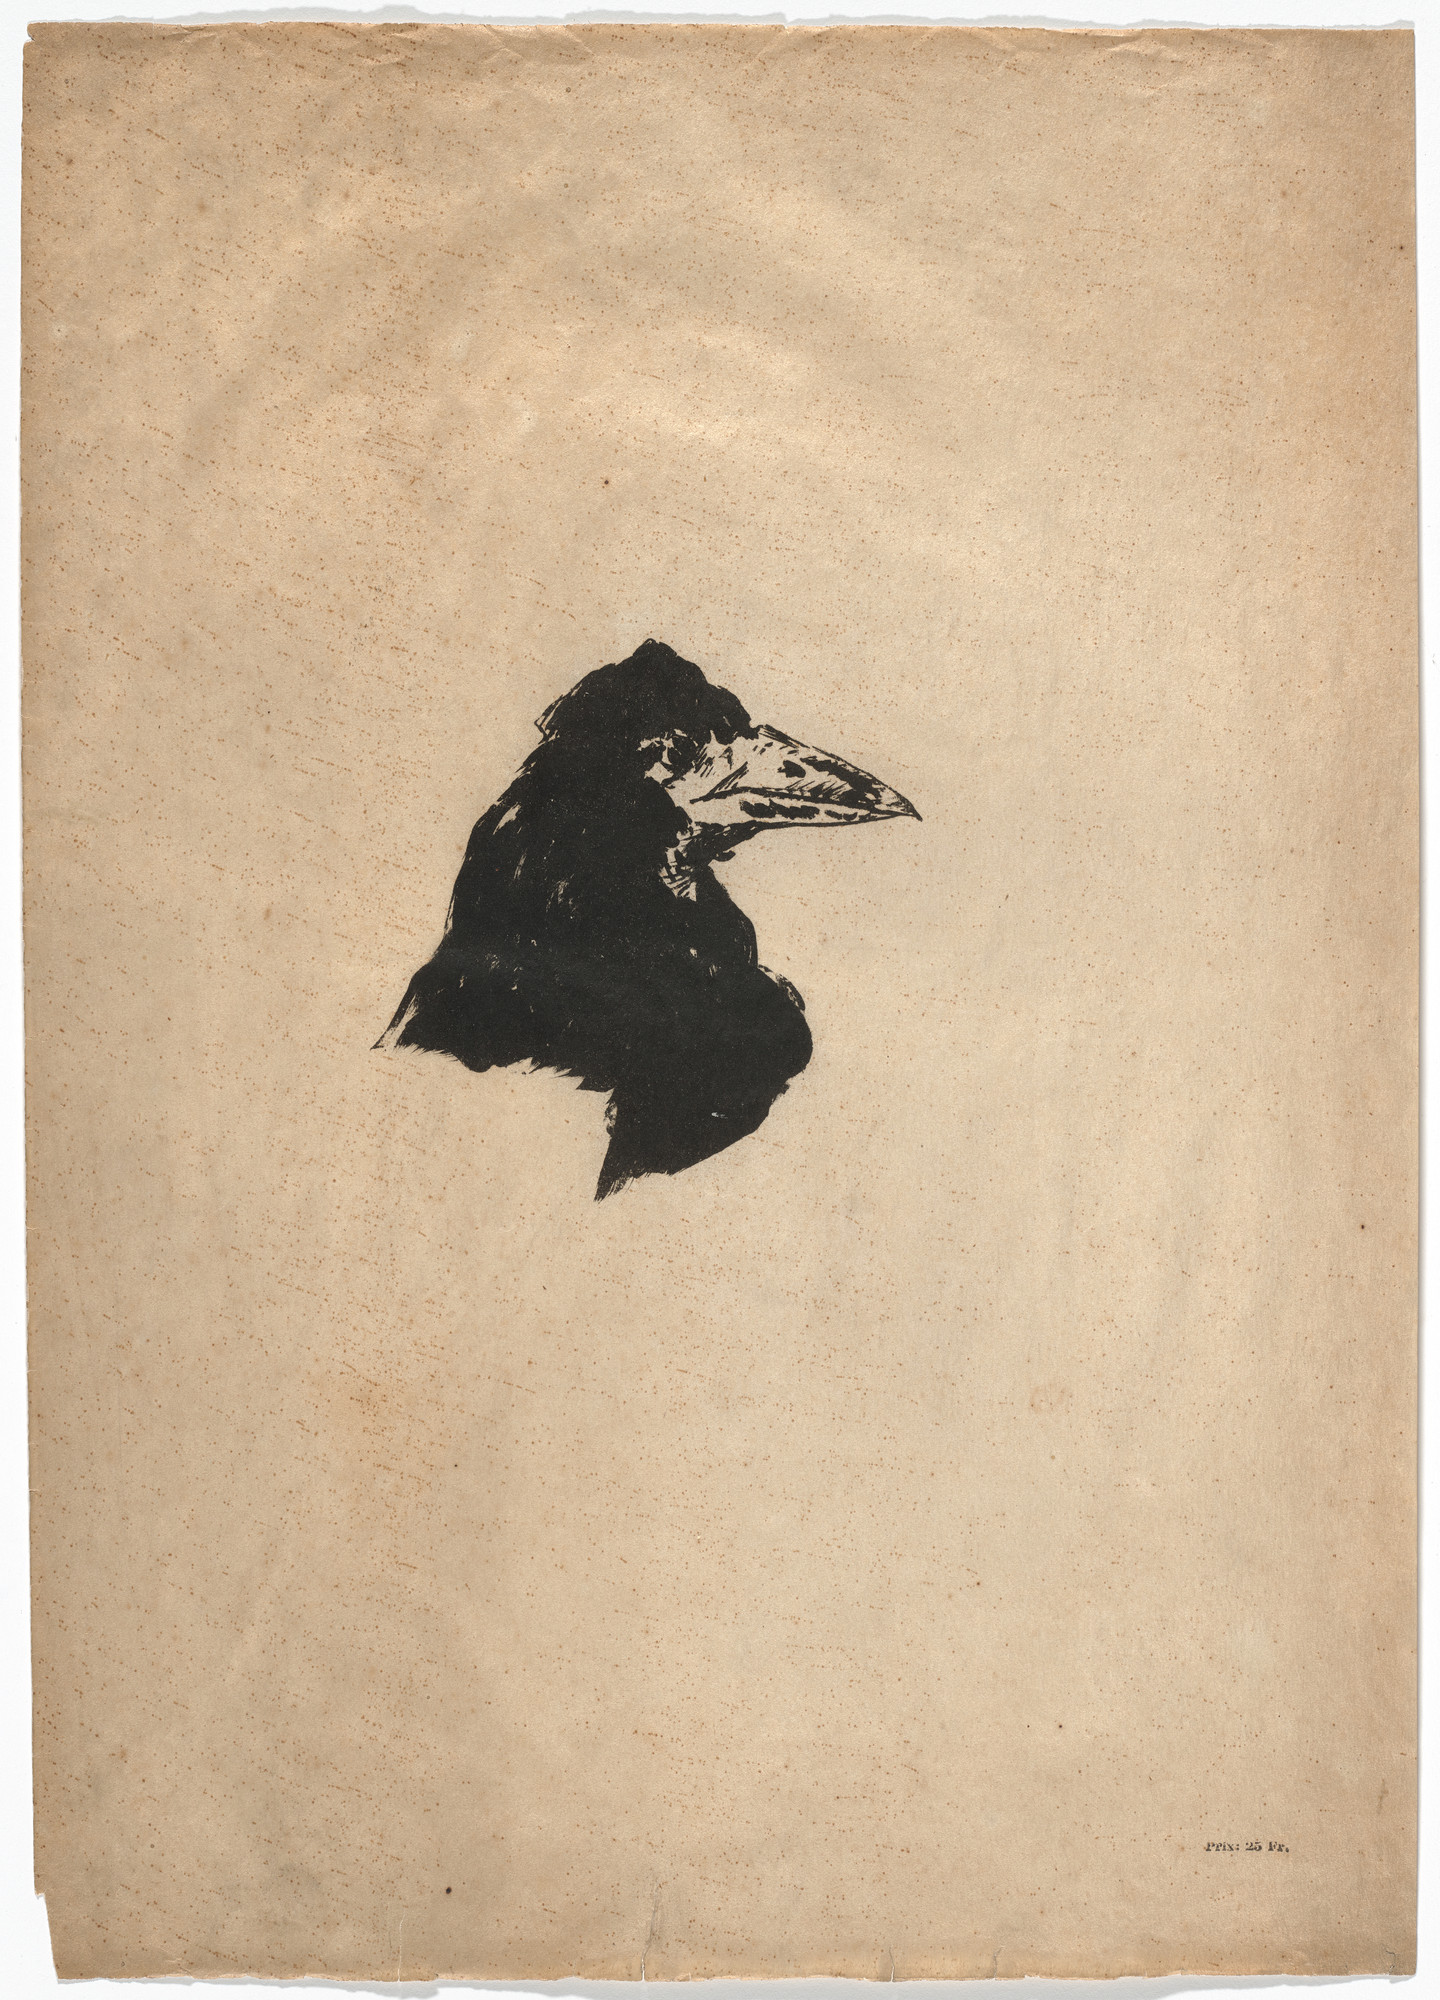 Édouard Manet. Tête de profil (Head of a Raven in Profile) (frontispiece) from Le Corbeau (The Raven). 1875